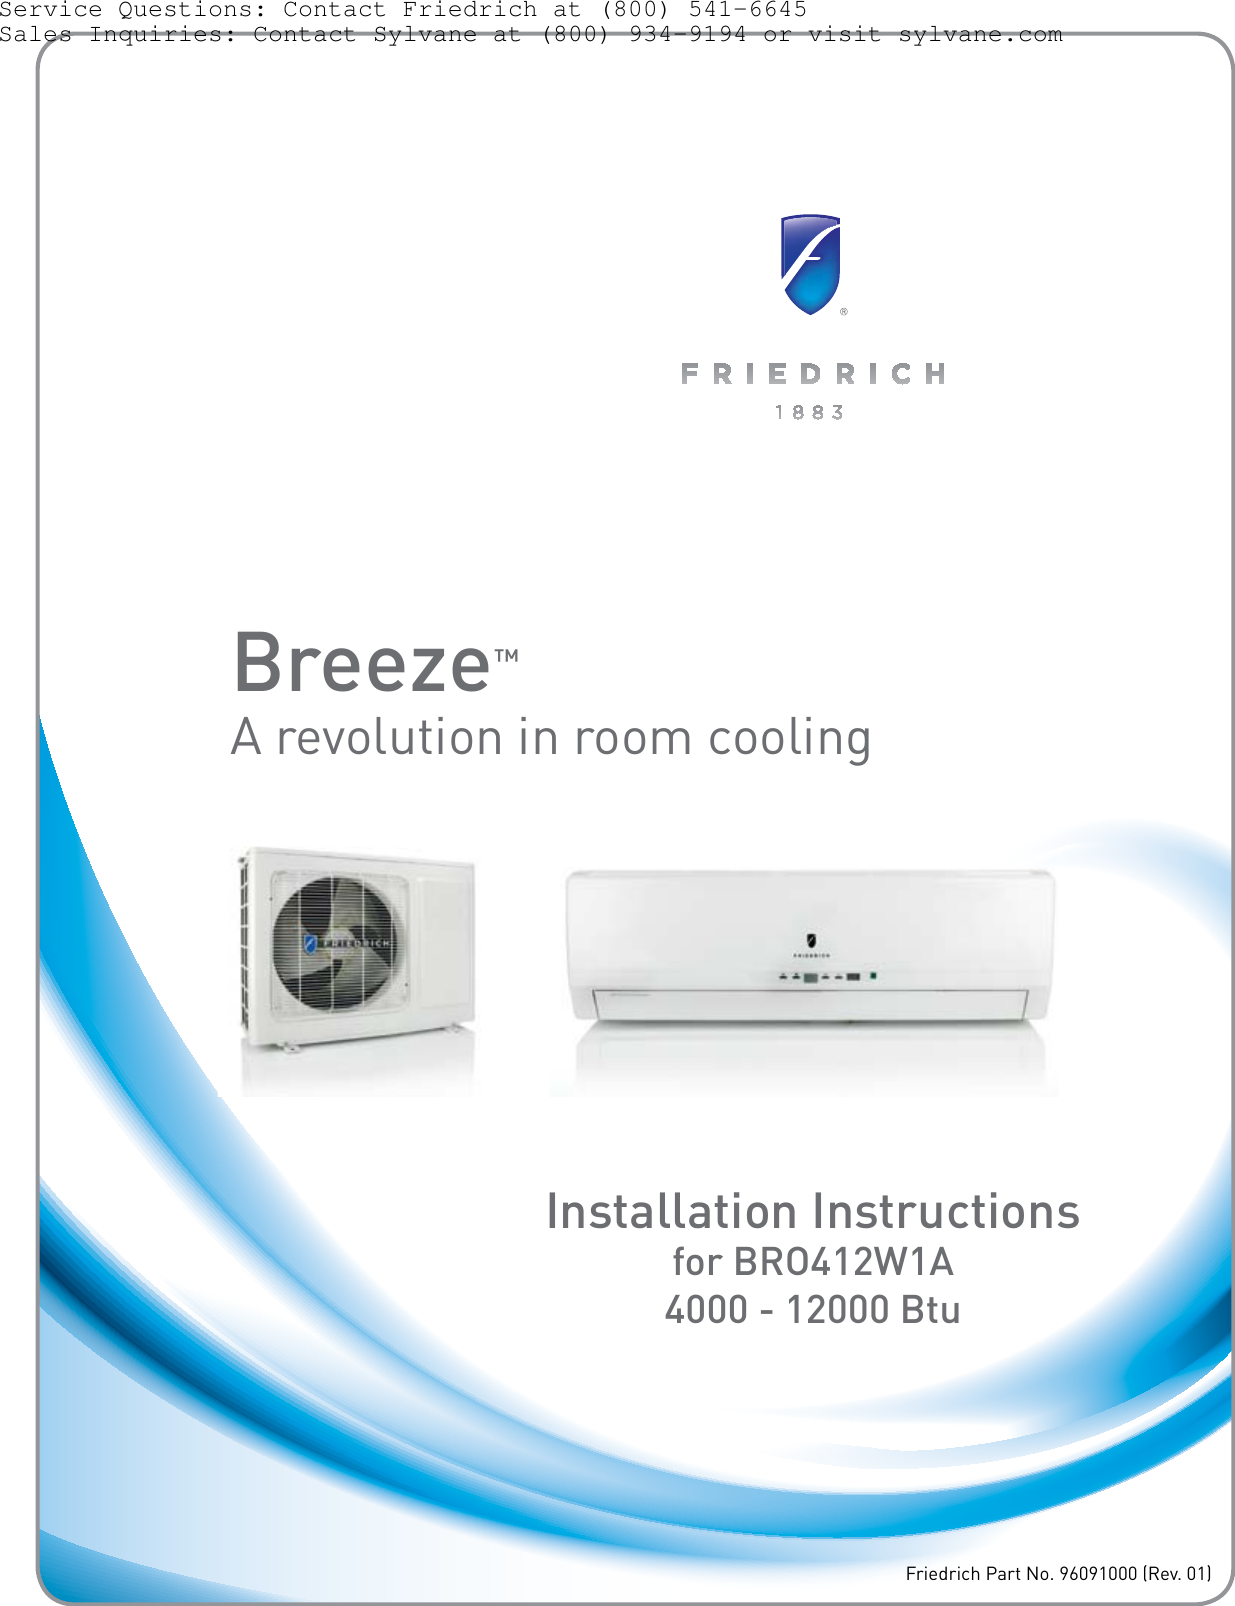 Friedrich Air Conditioner Bro412w1a Users Manual Breeze Br0412w1a Wiring Diagram Owners Sylvane